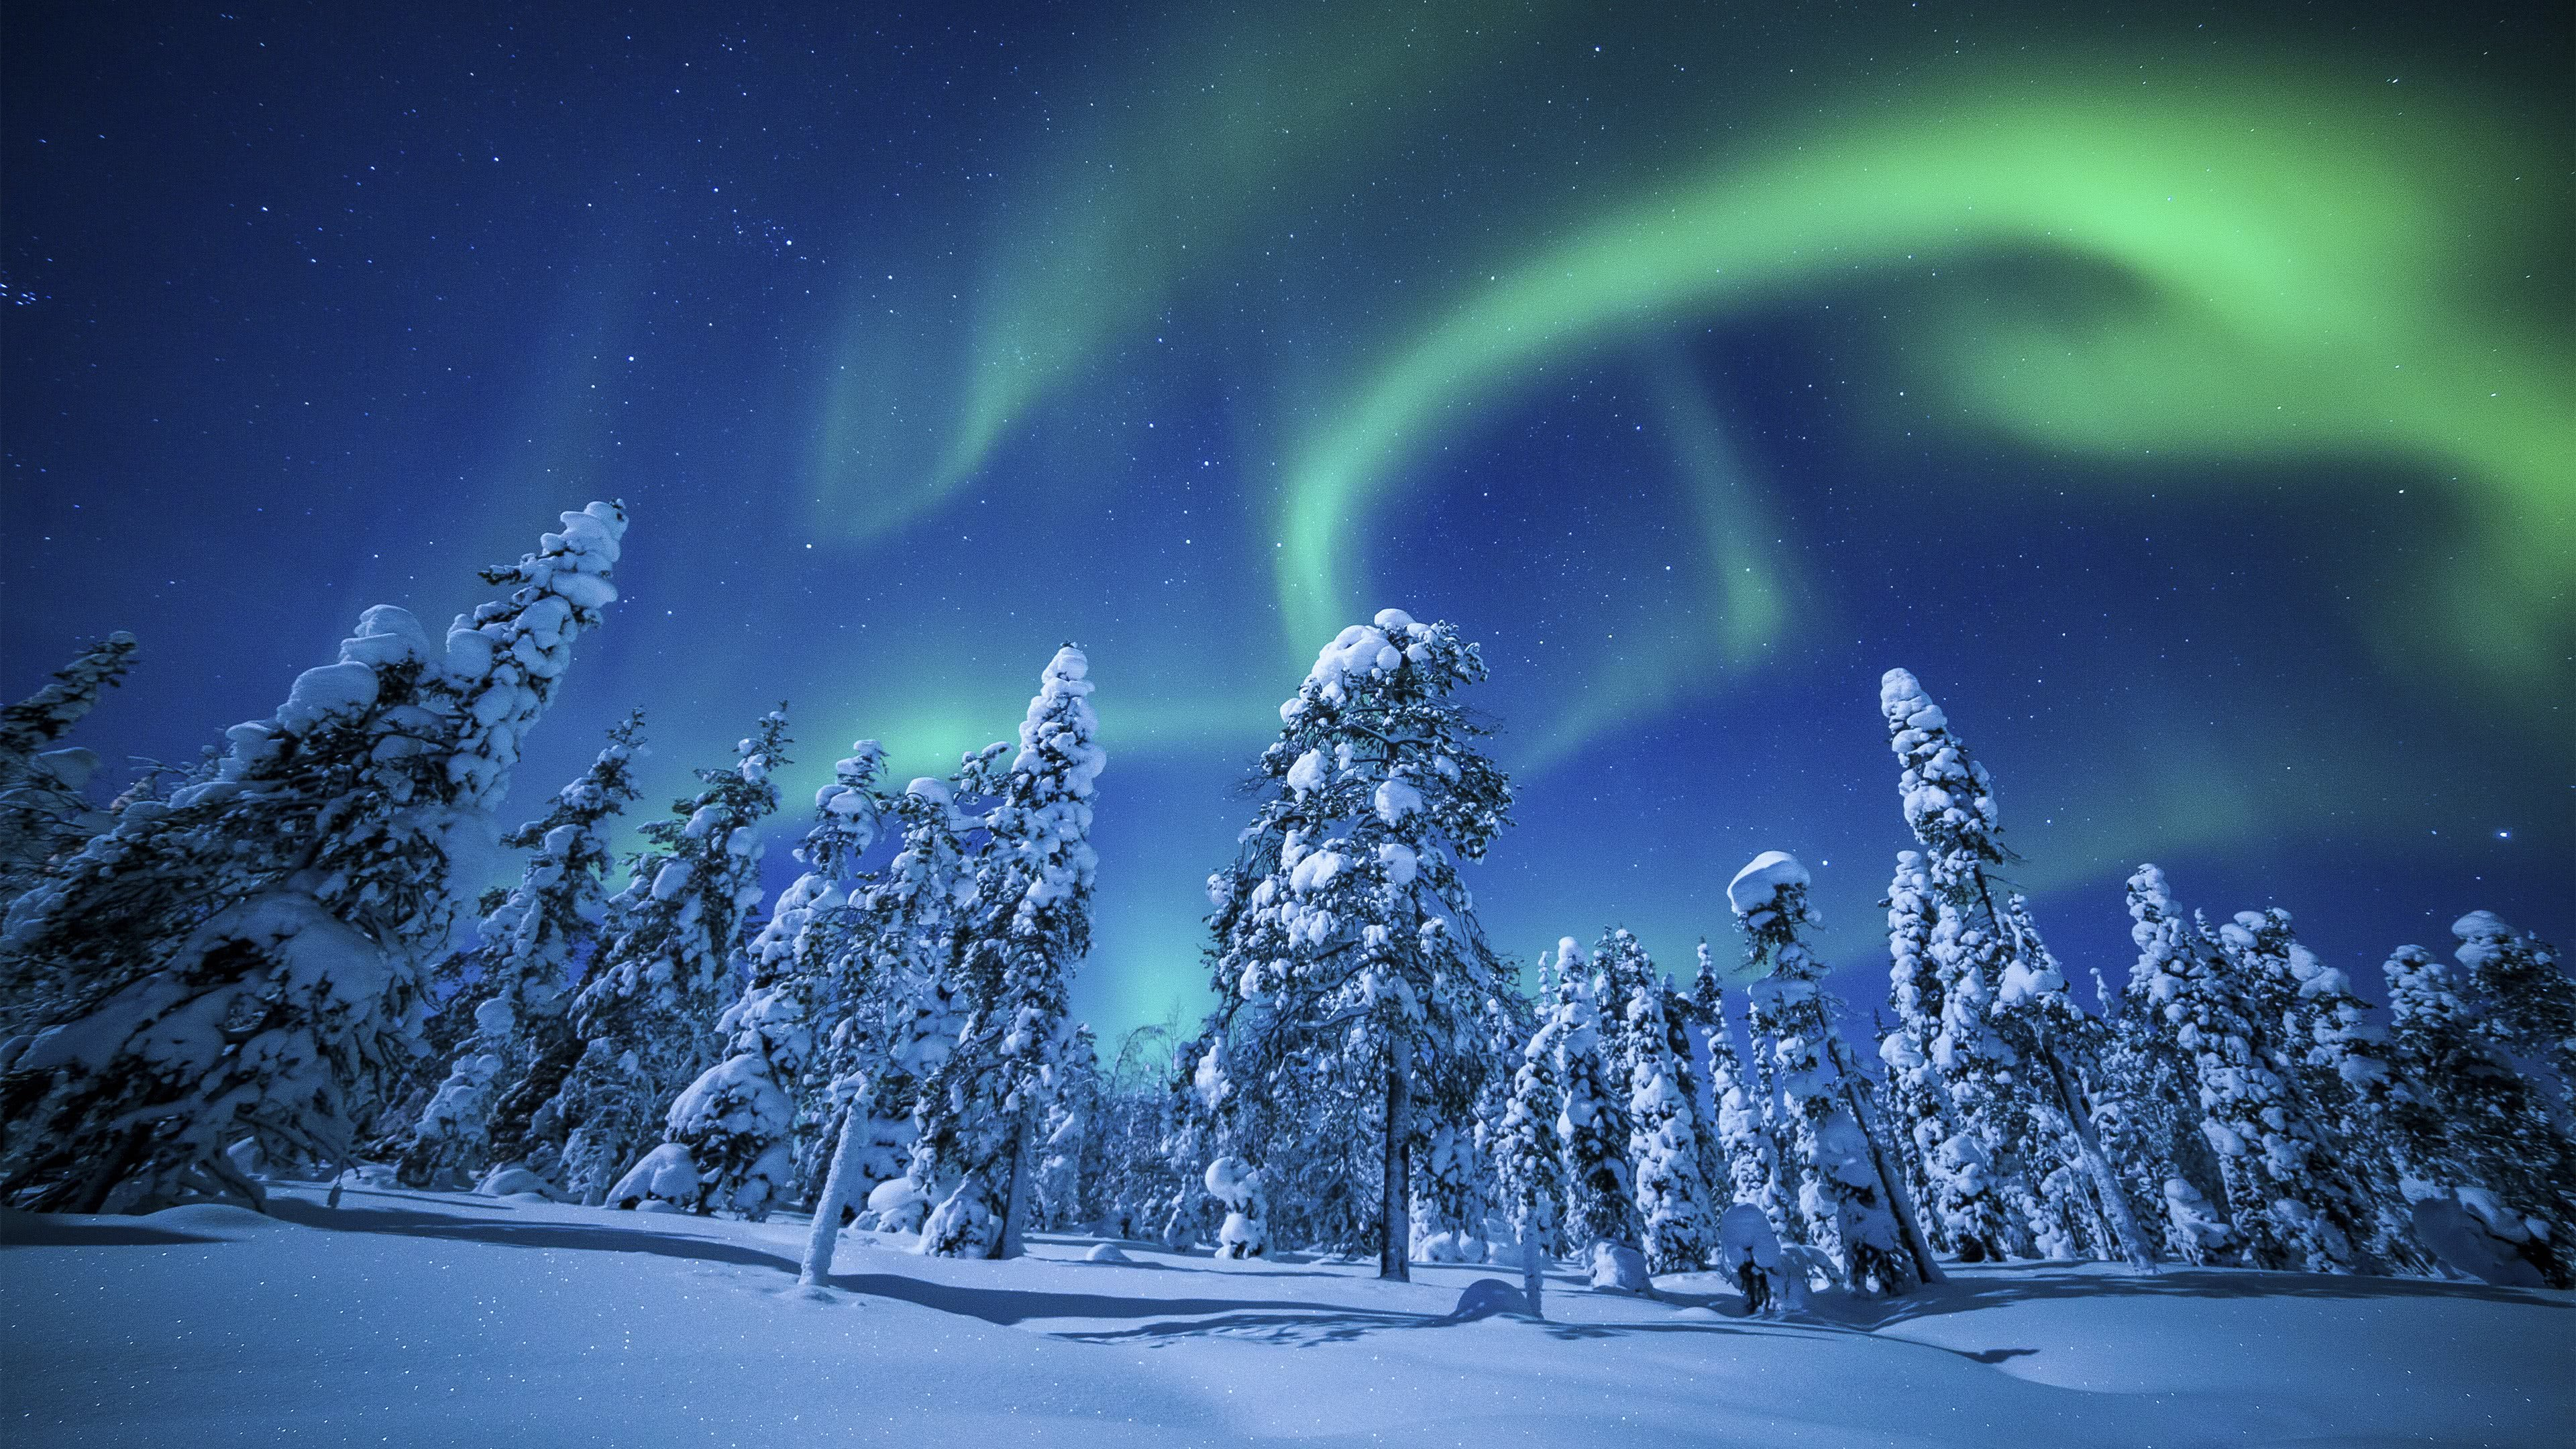 Northern Lights (Aurora Borealis) Over Winter Forest UHD